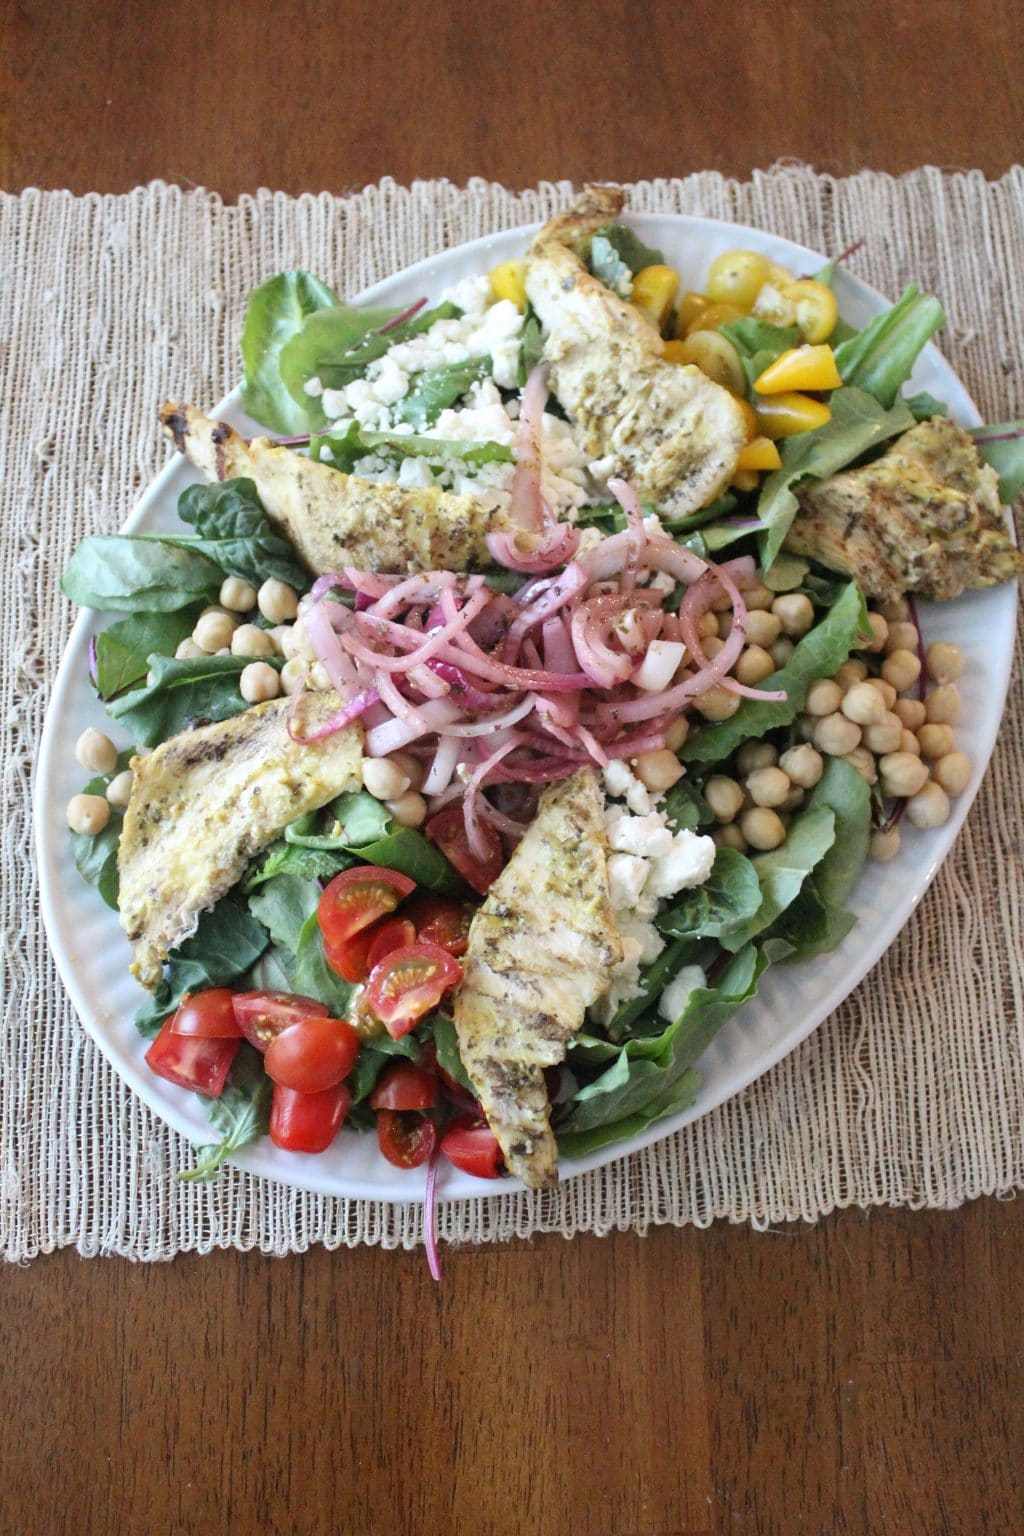 Easy Dinner, Salad Platter, Whole30 weeknight meal, Stilettos and Diapers